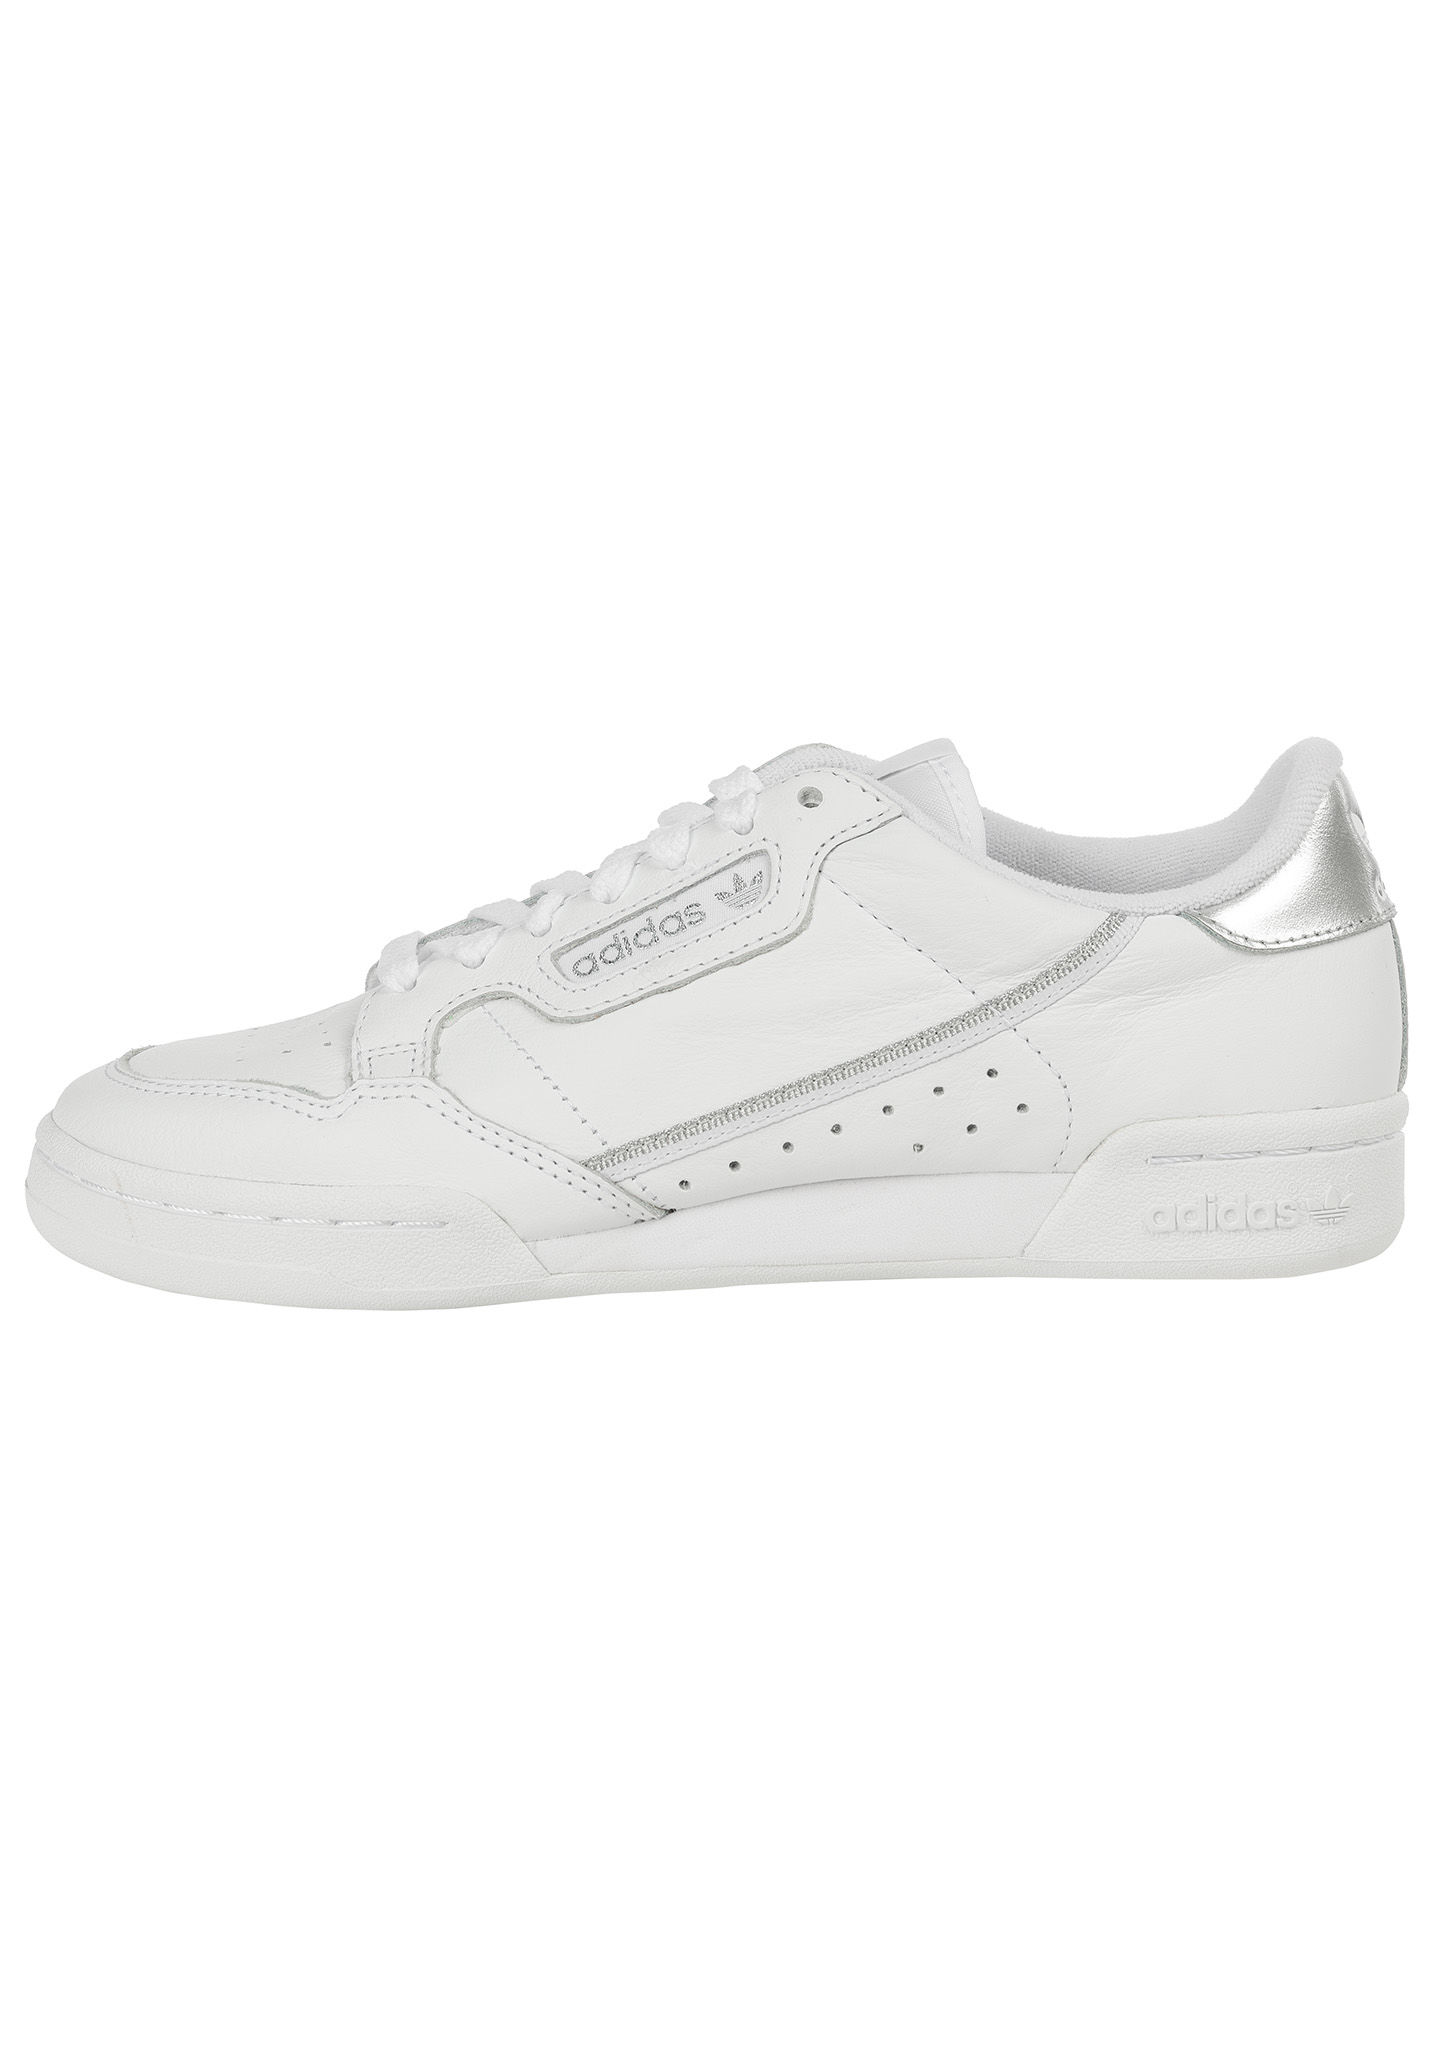 00ddb70e7 ADIDAS ORIGINALS Continental 80 - Sneakers for Women - White - Planet Sports